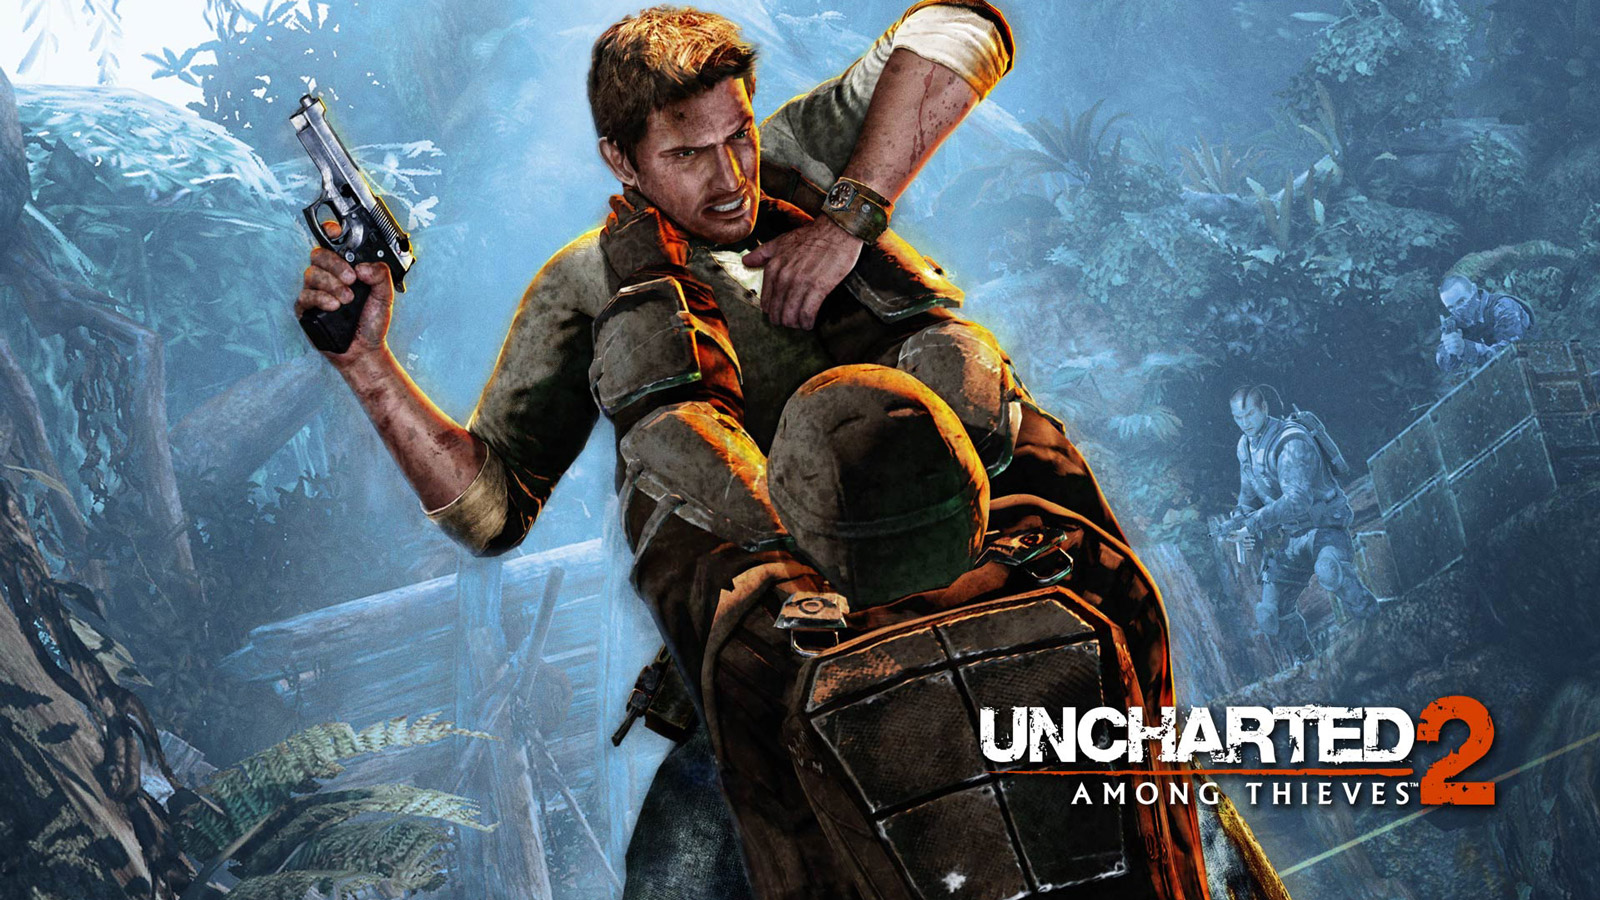 Free Uncharted 2: Among Thieves Wallpaper in 1600x900